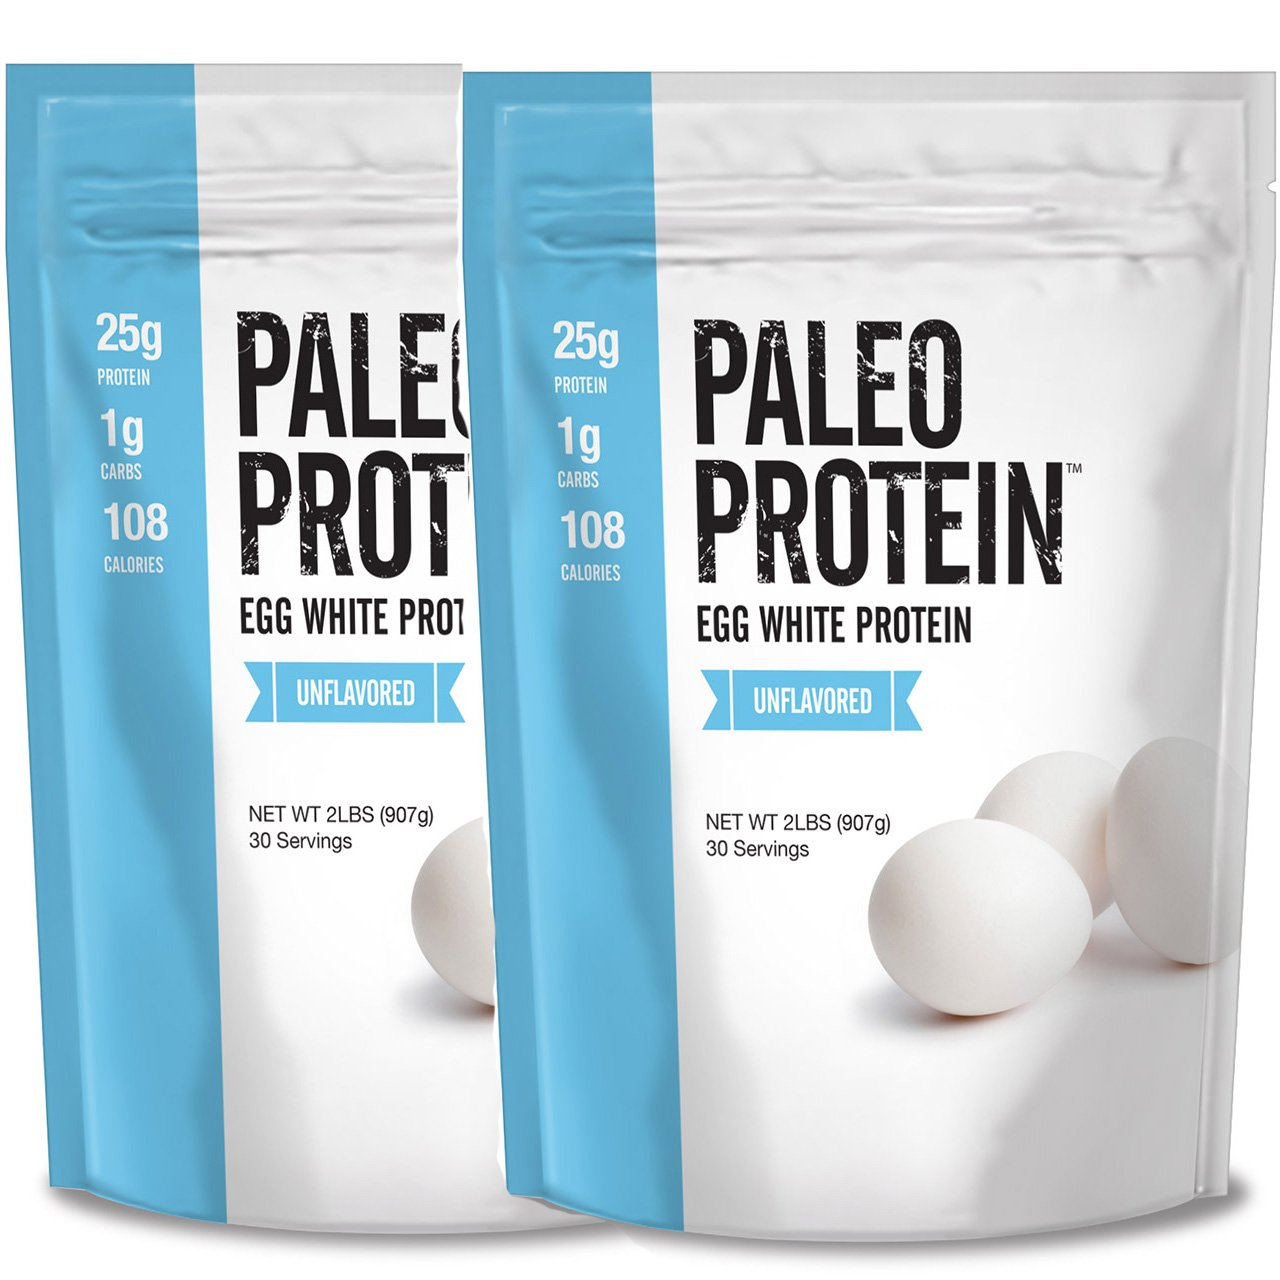 Paleo Protein Egg White Powder (4 LBS Total)(Soy Free)(60 Servings Total) (Two 2lbs Pouches)